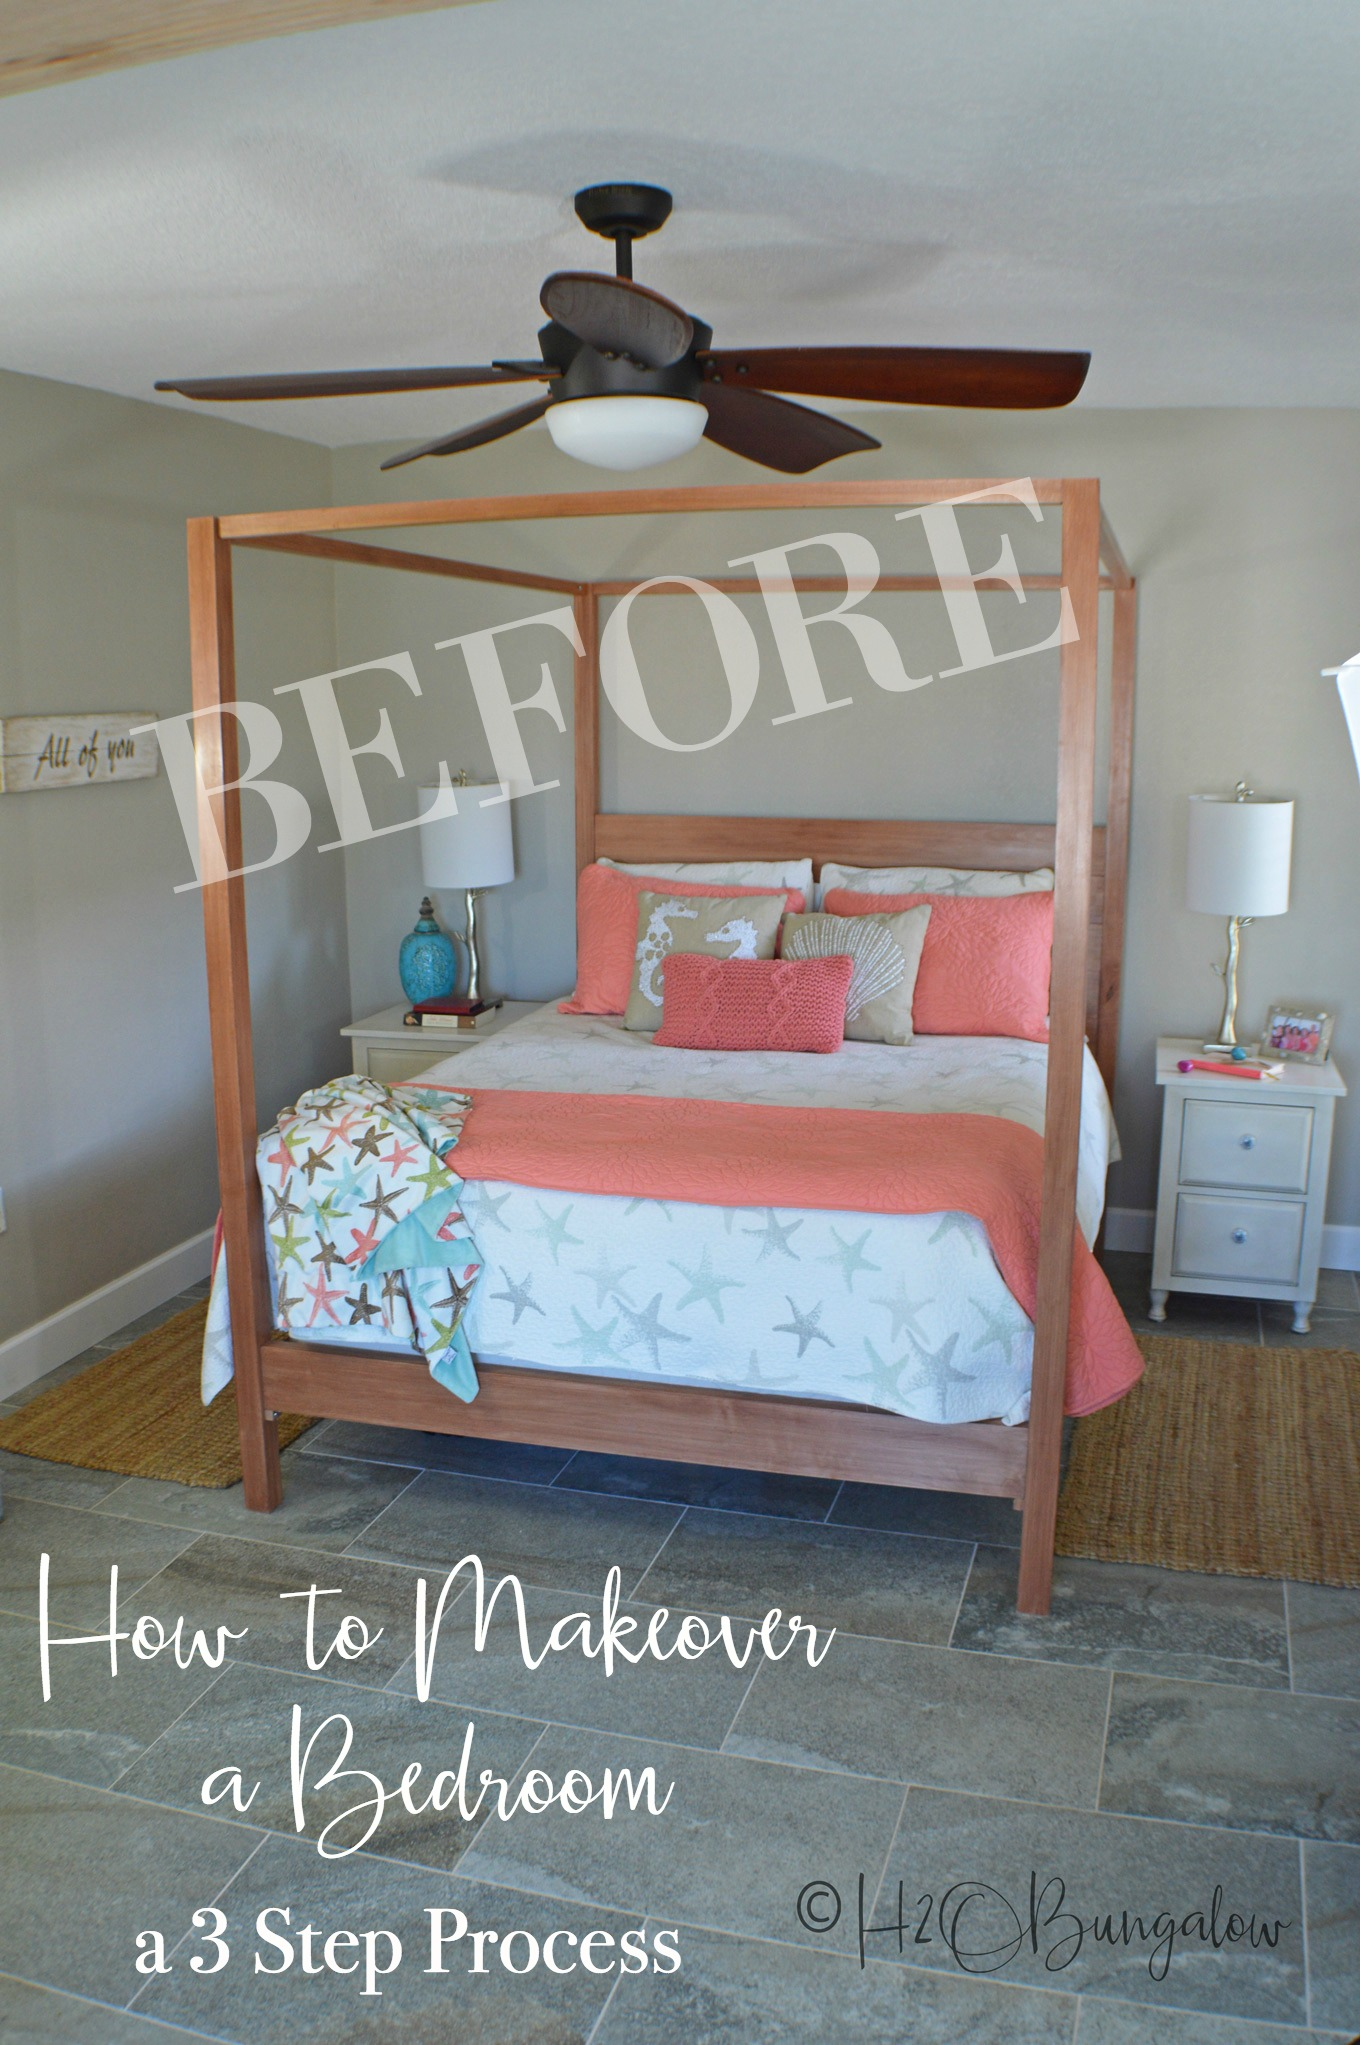 Today, I'm sharing how to makeover a bedroom in three steps. Changing decorating styles can be overwhelming, but when a bedroom makeover is broken into smaller steps it's much easier to achieve the results you want. Use these simple steps and tips on your next bedroom makeover to create the room of your dreams.